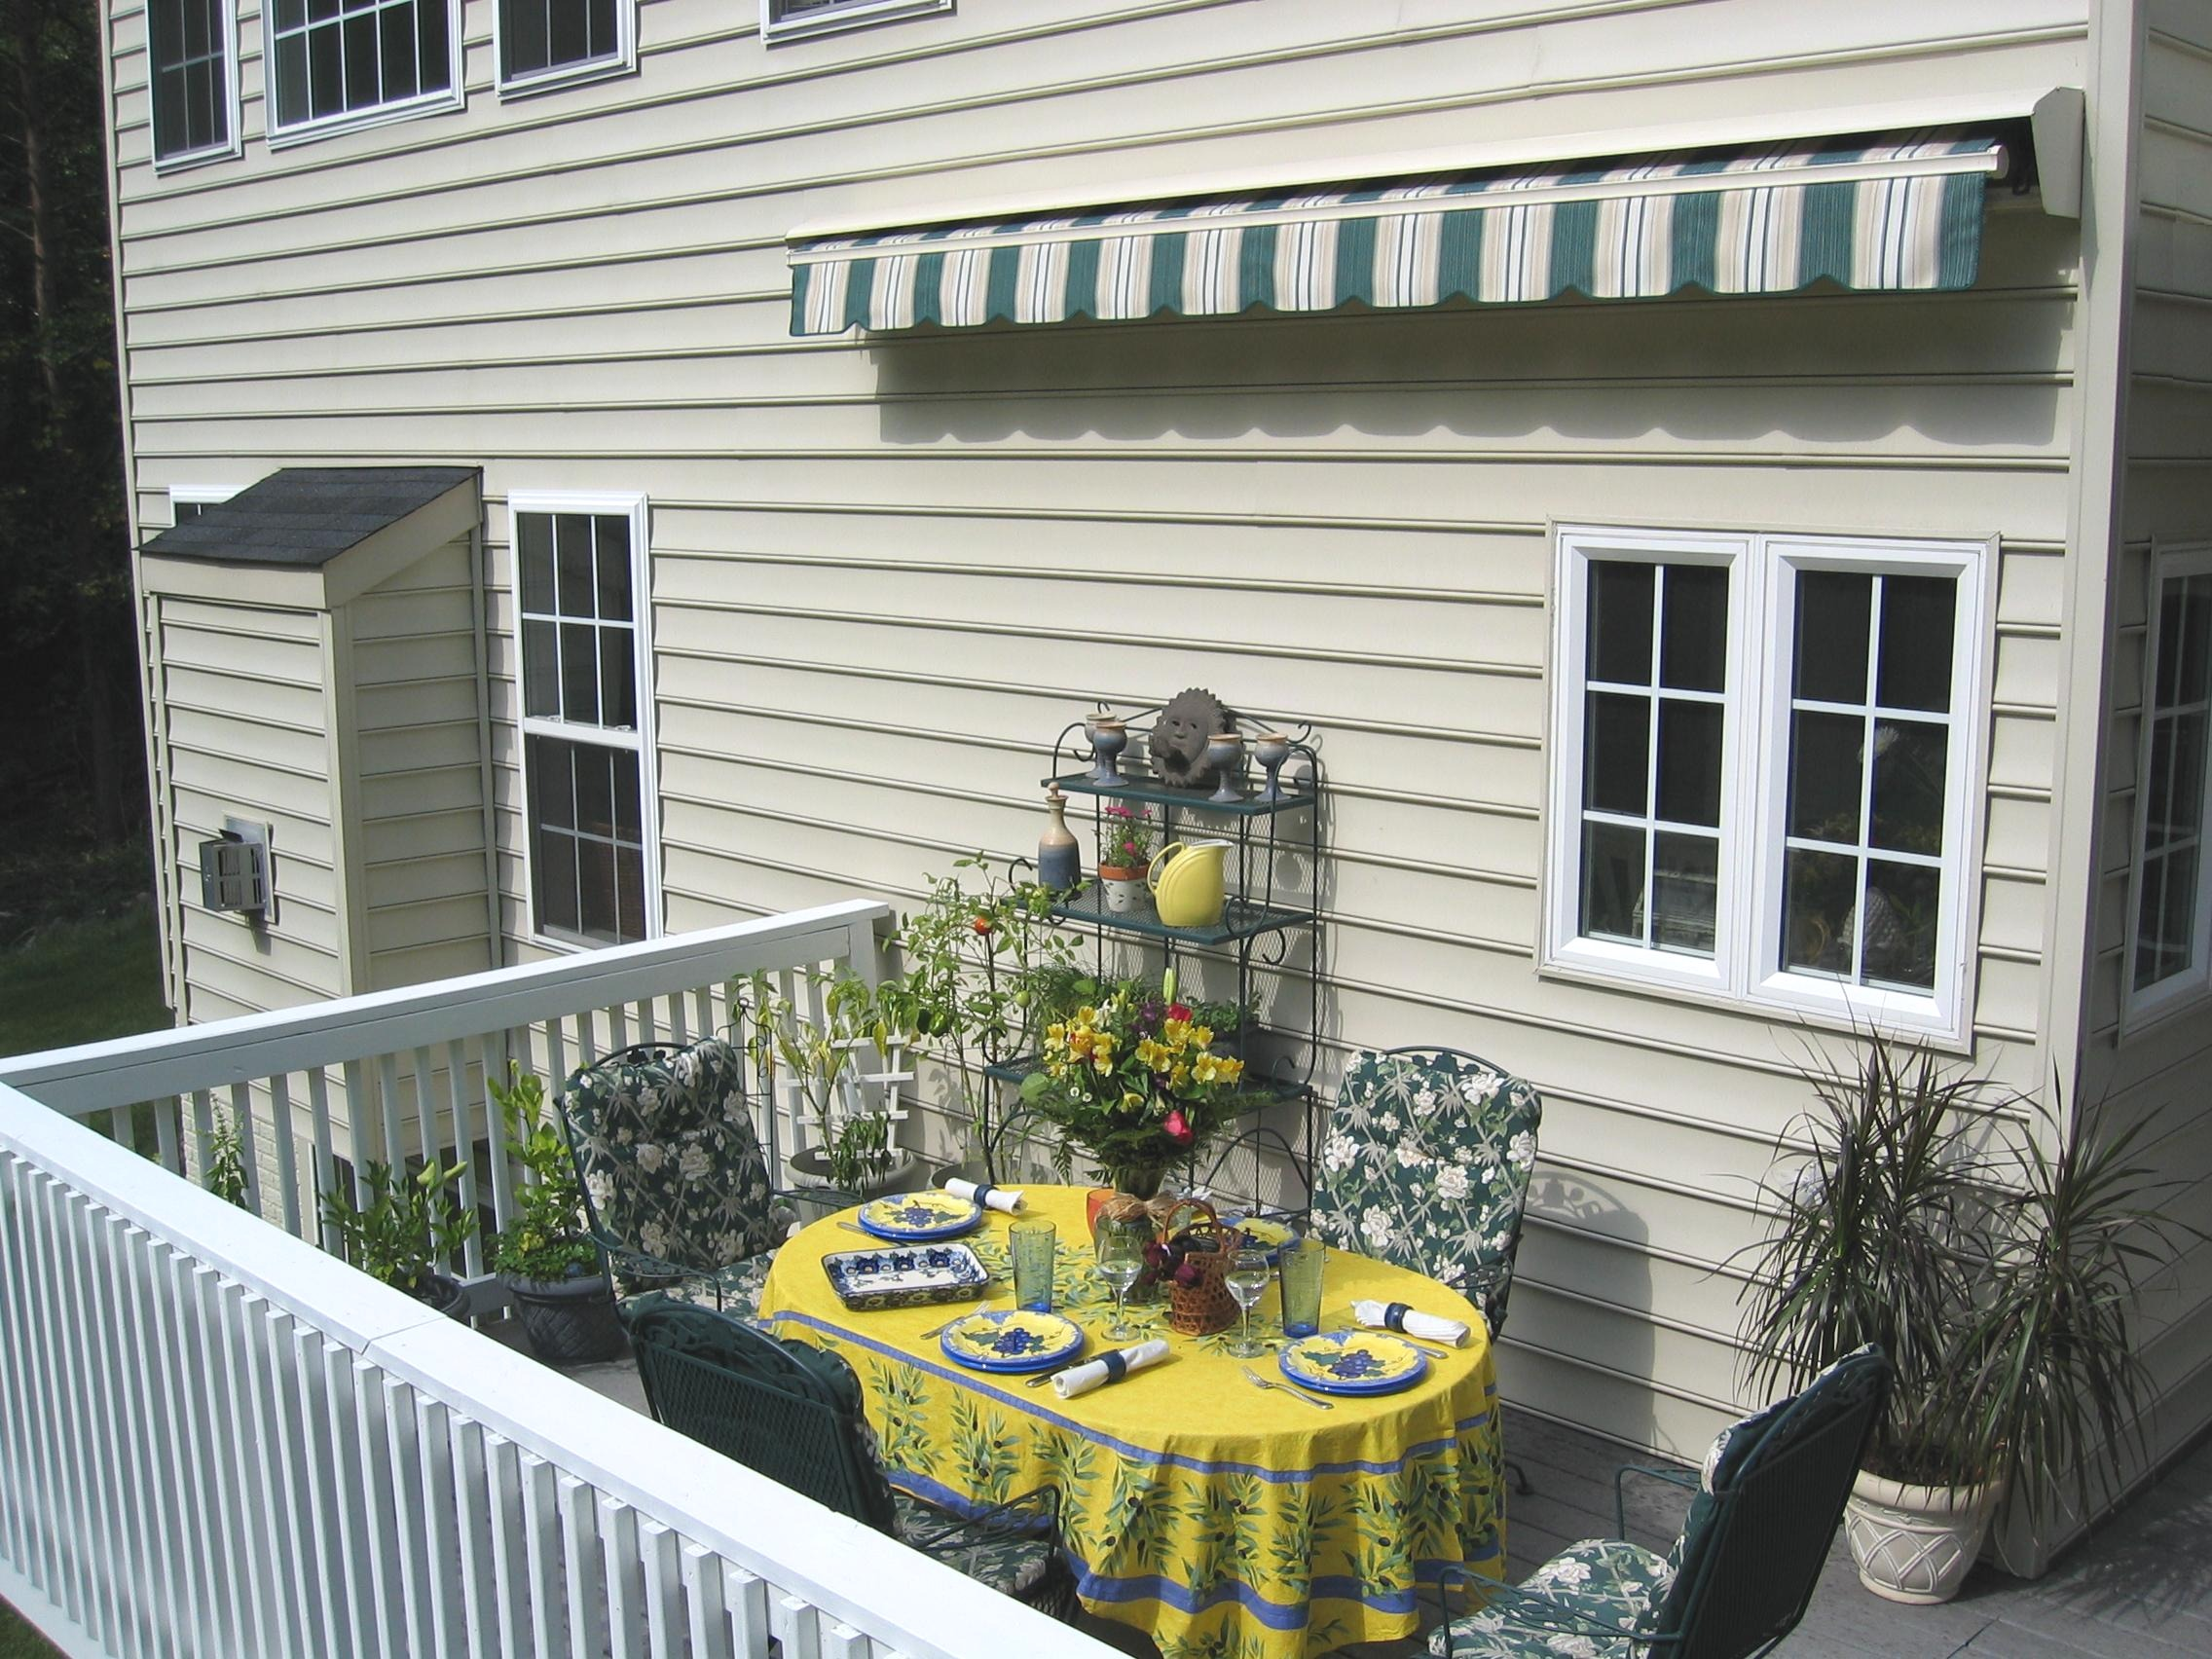 patio county decks chester and stationary glass remodeling deck installation awnings with milanese awning for railing